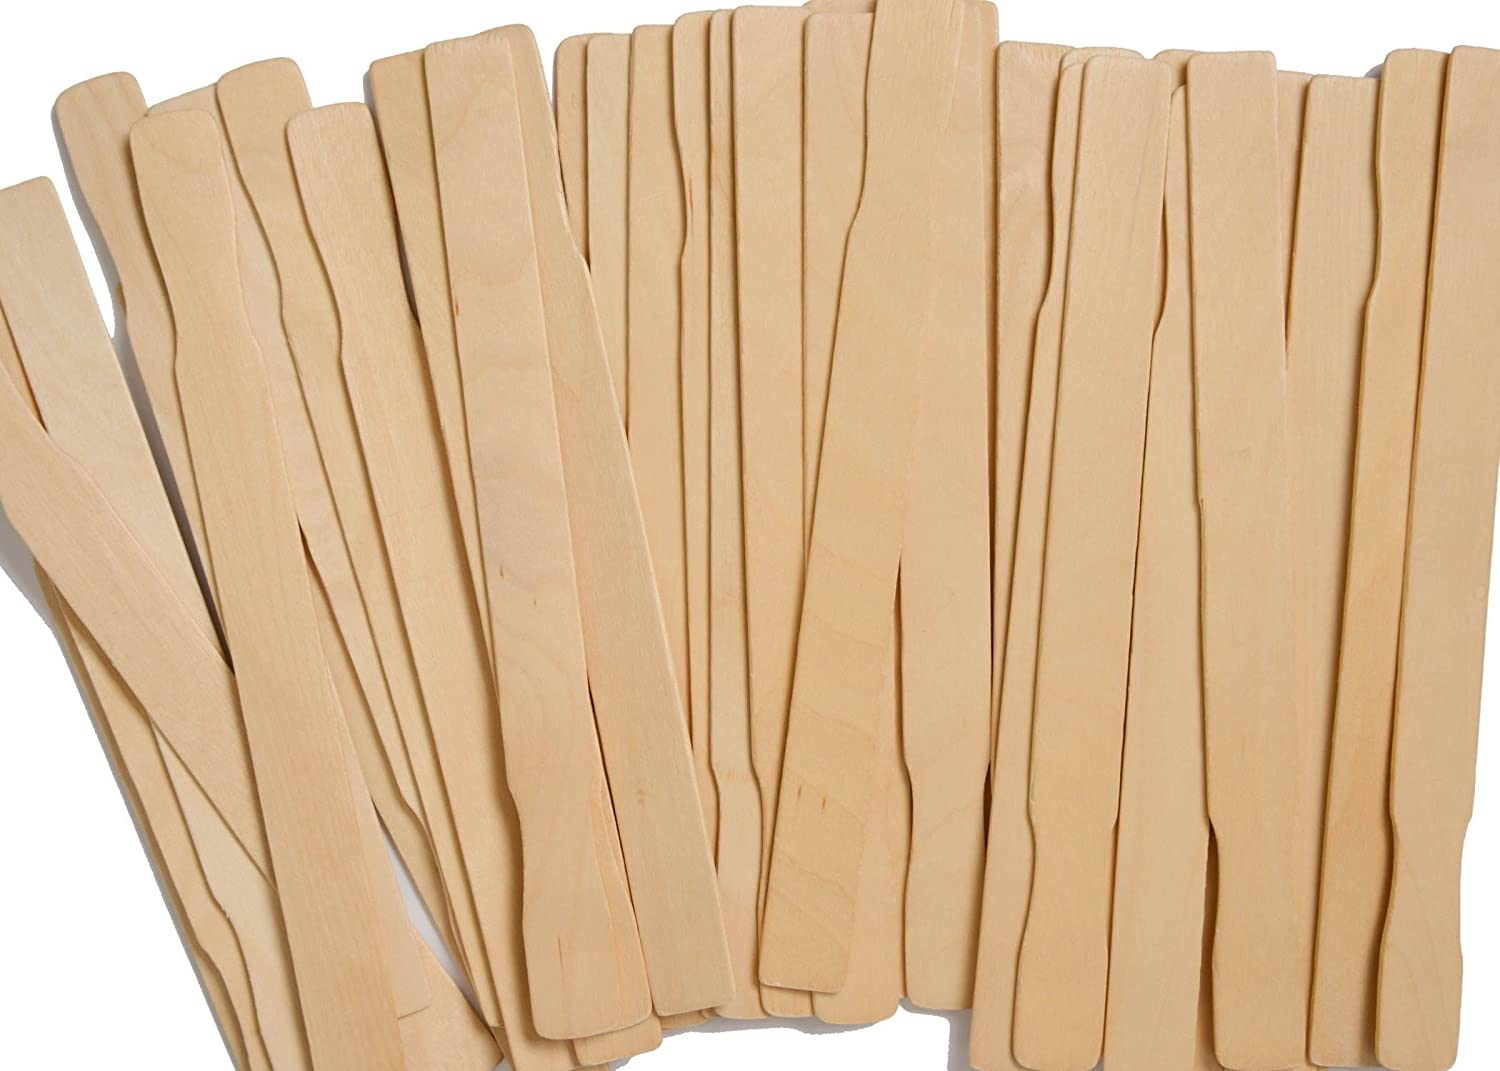 Perfect Stix 6 Wooden Paint Paddle Stirrer Sticks Length Pack of 100